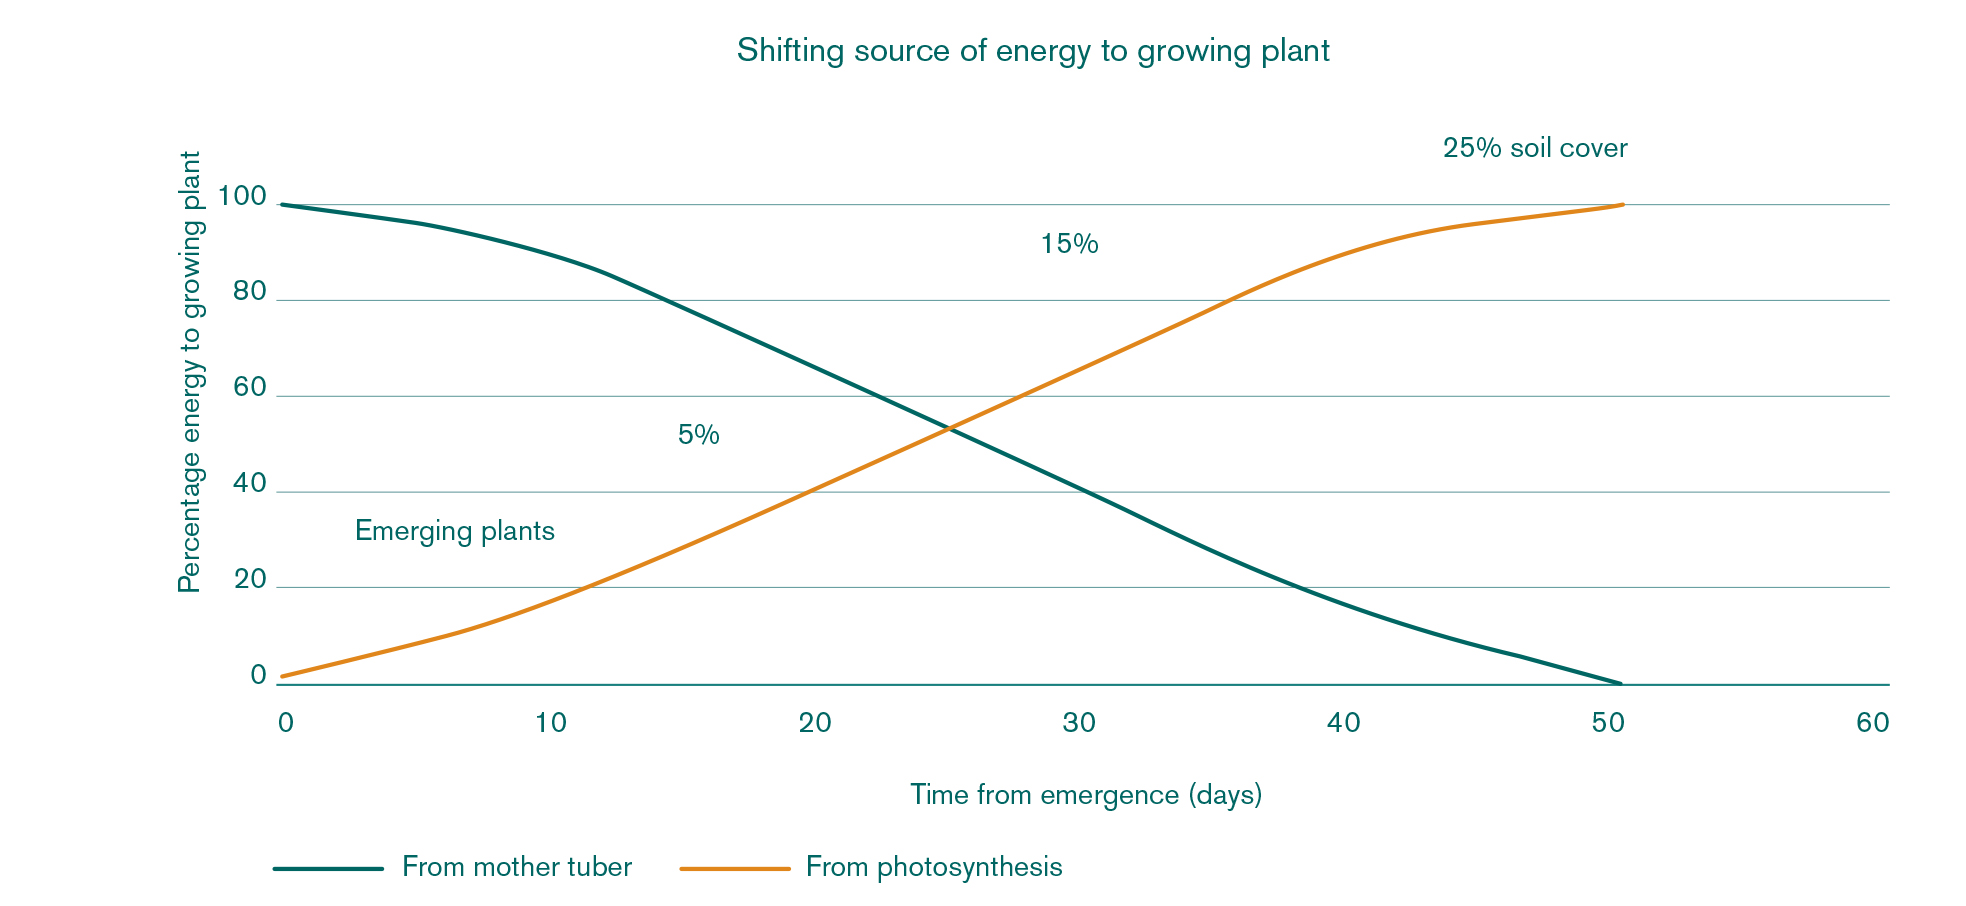 Shifting source of energy to growing plant